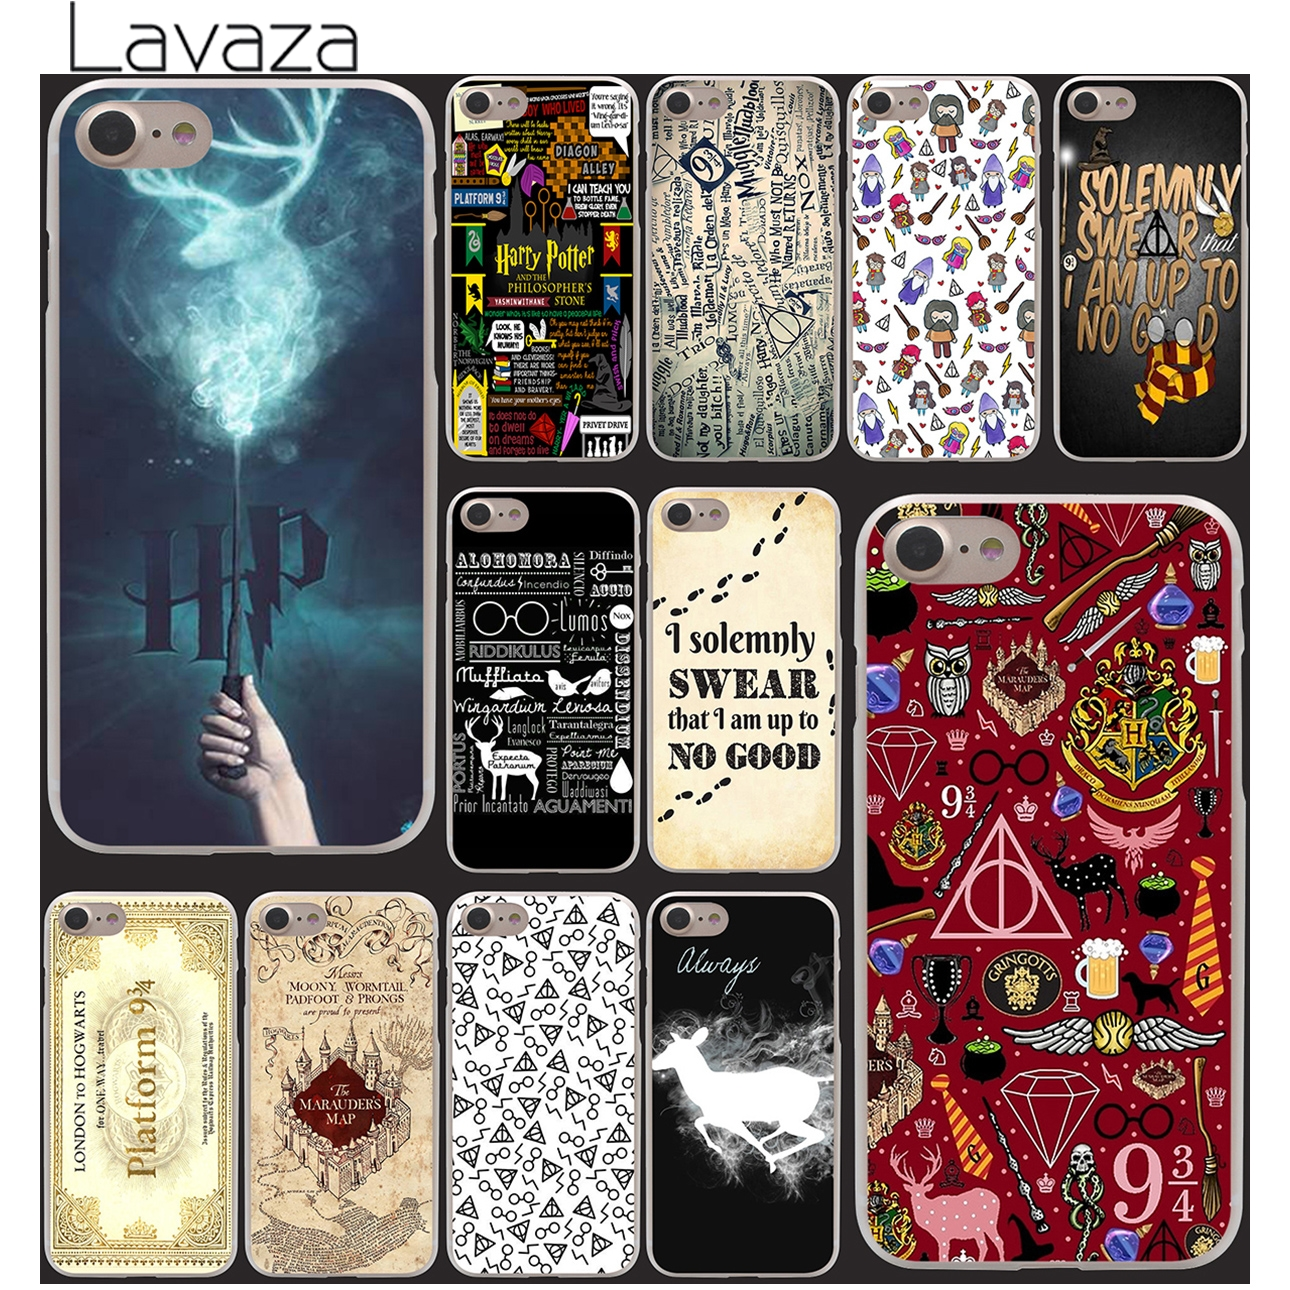 Lavaza 159U- Harry Potter Movie Poster Magic Wand Unique Hard Clear Back Cover Case for iPhone 7 7 Plus 5 5s 5g Style